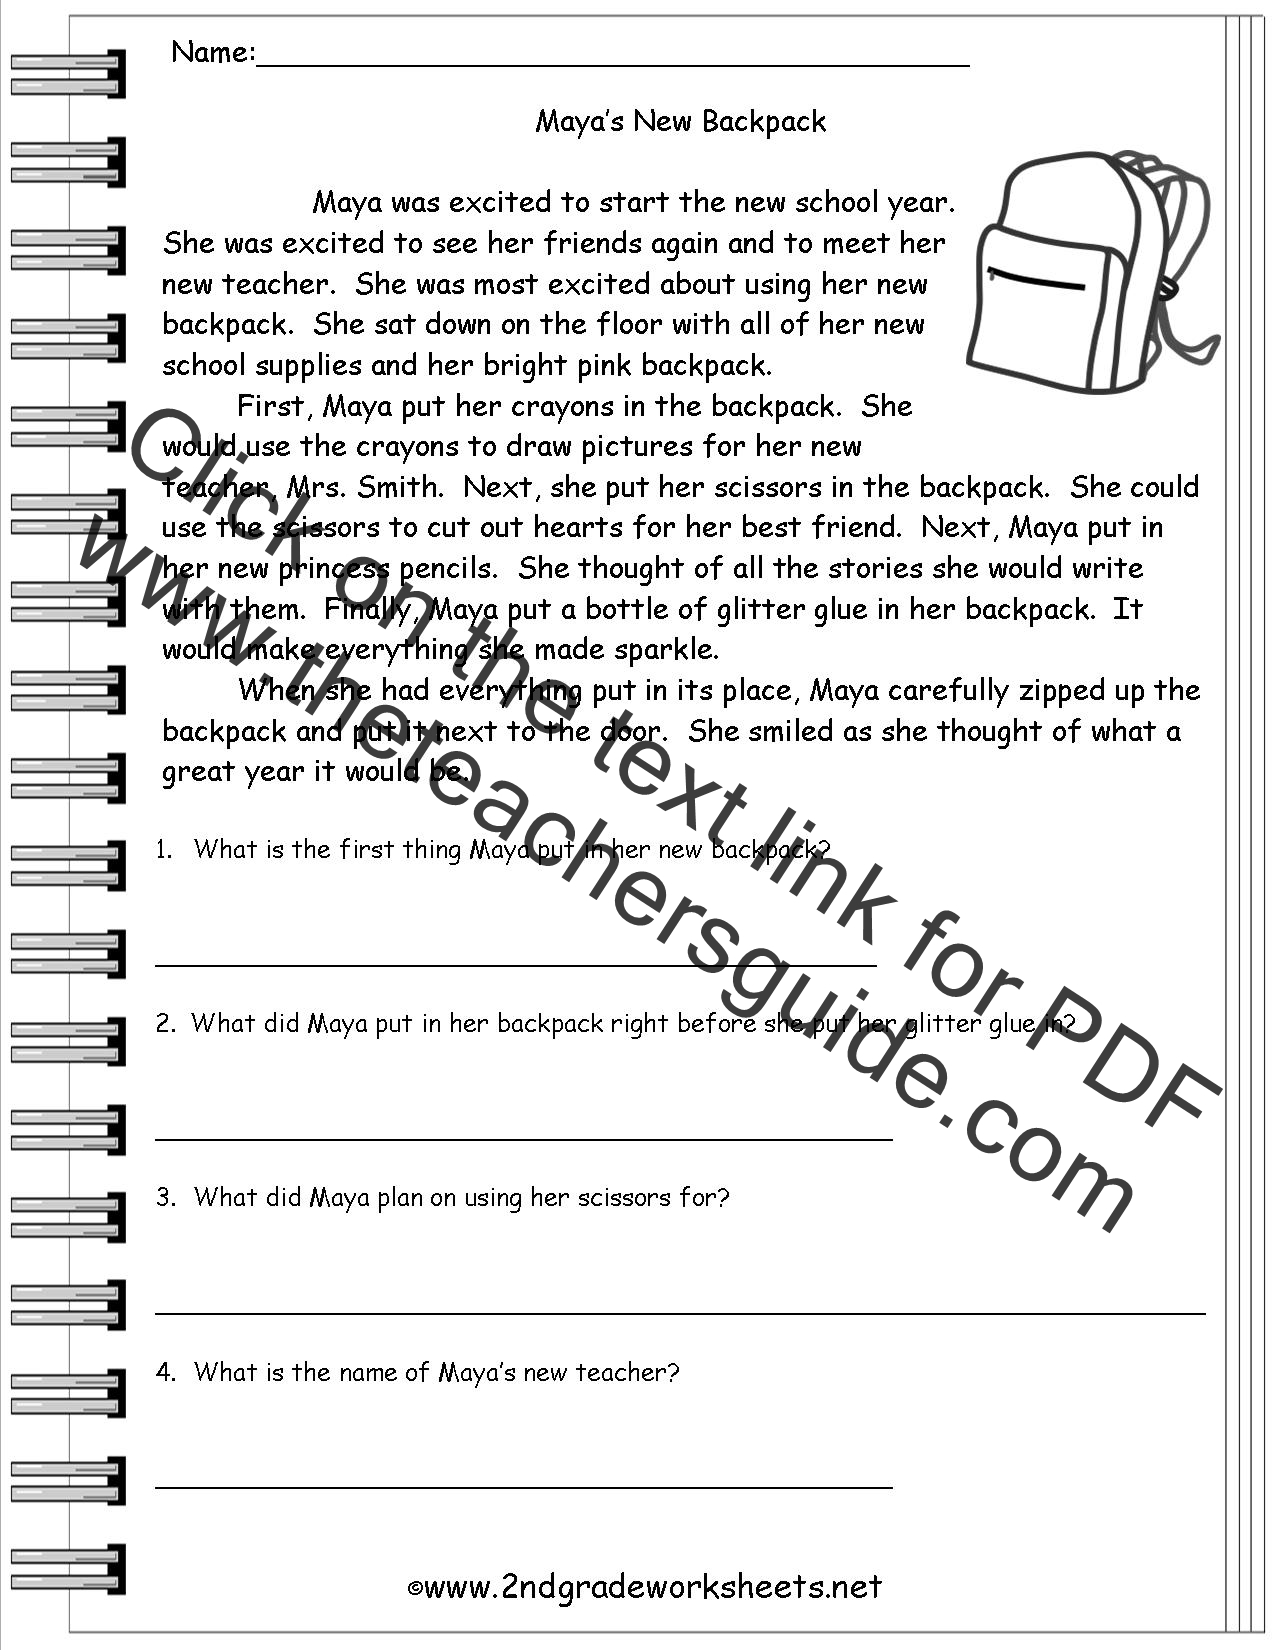 worksheet Free School Worksheets free back to school worksheets and printouts mayas new backpack comprehension story